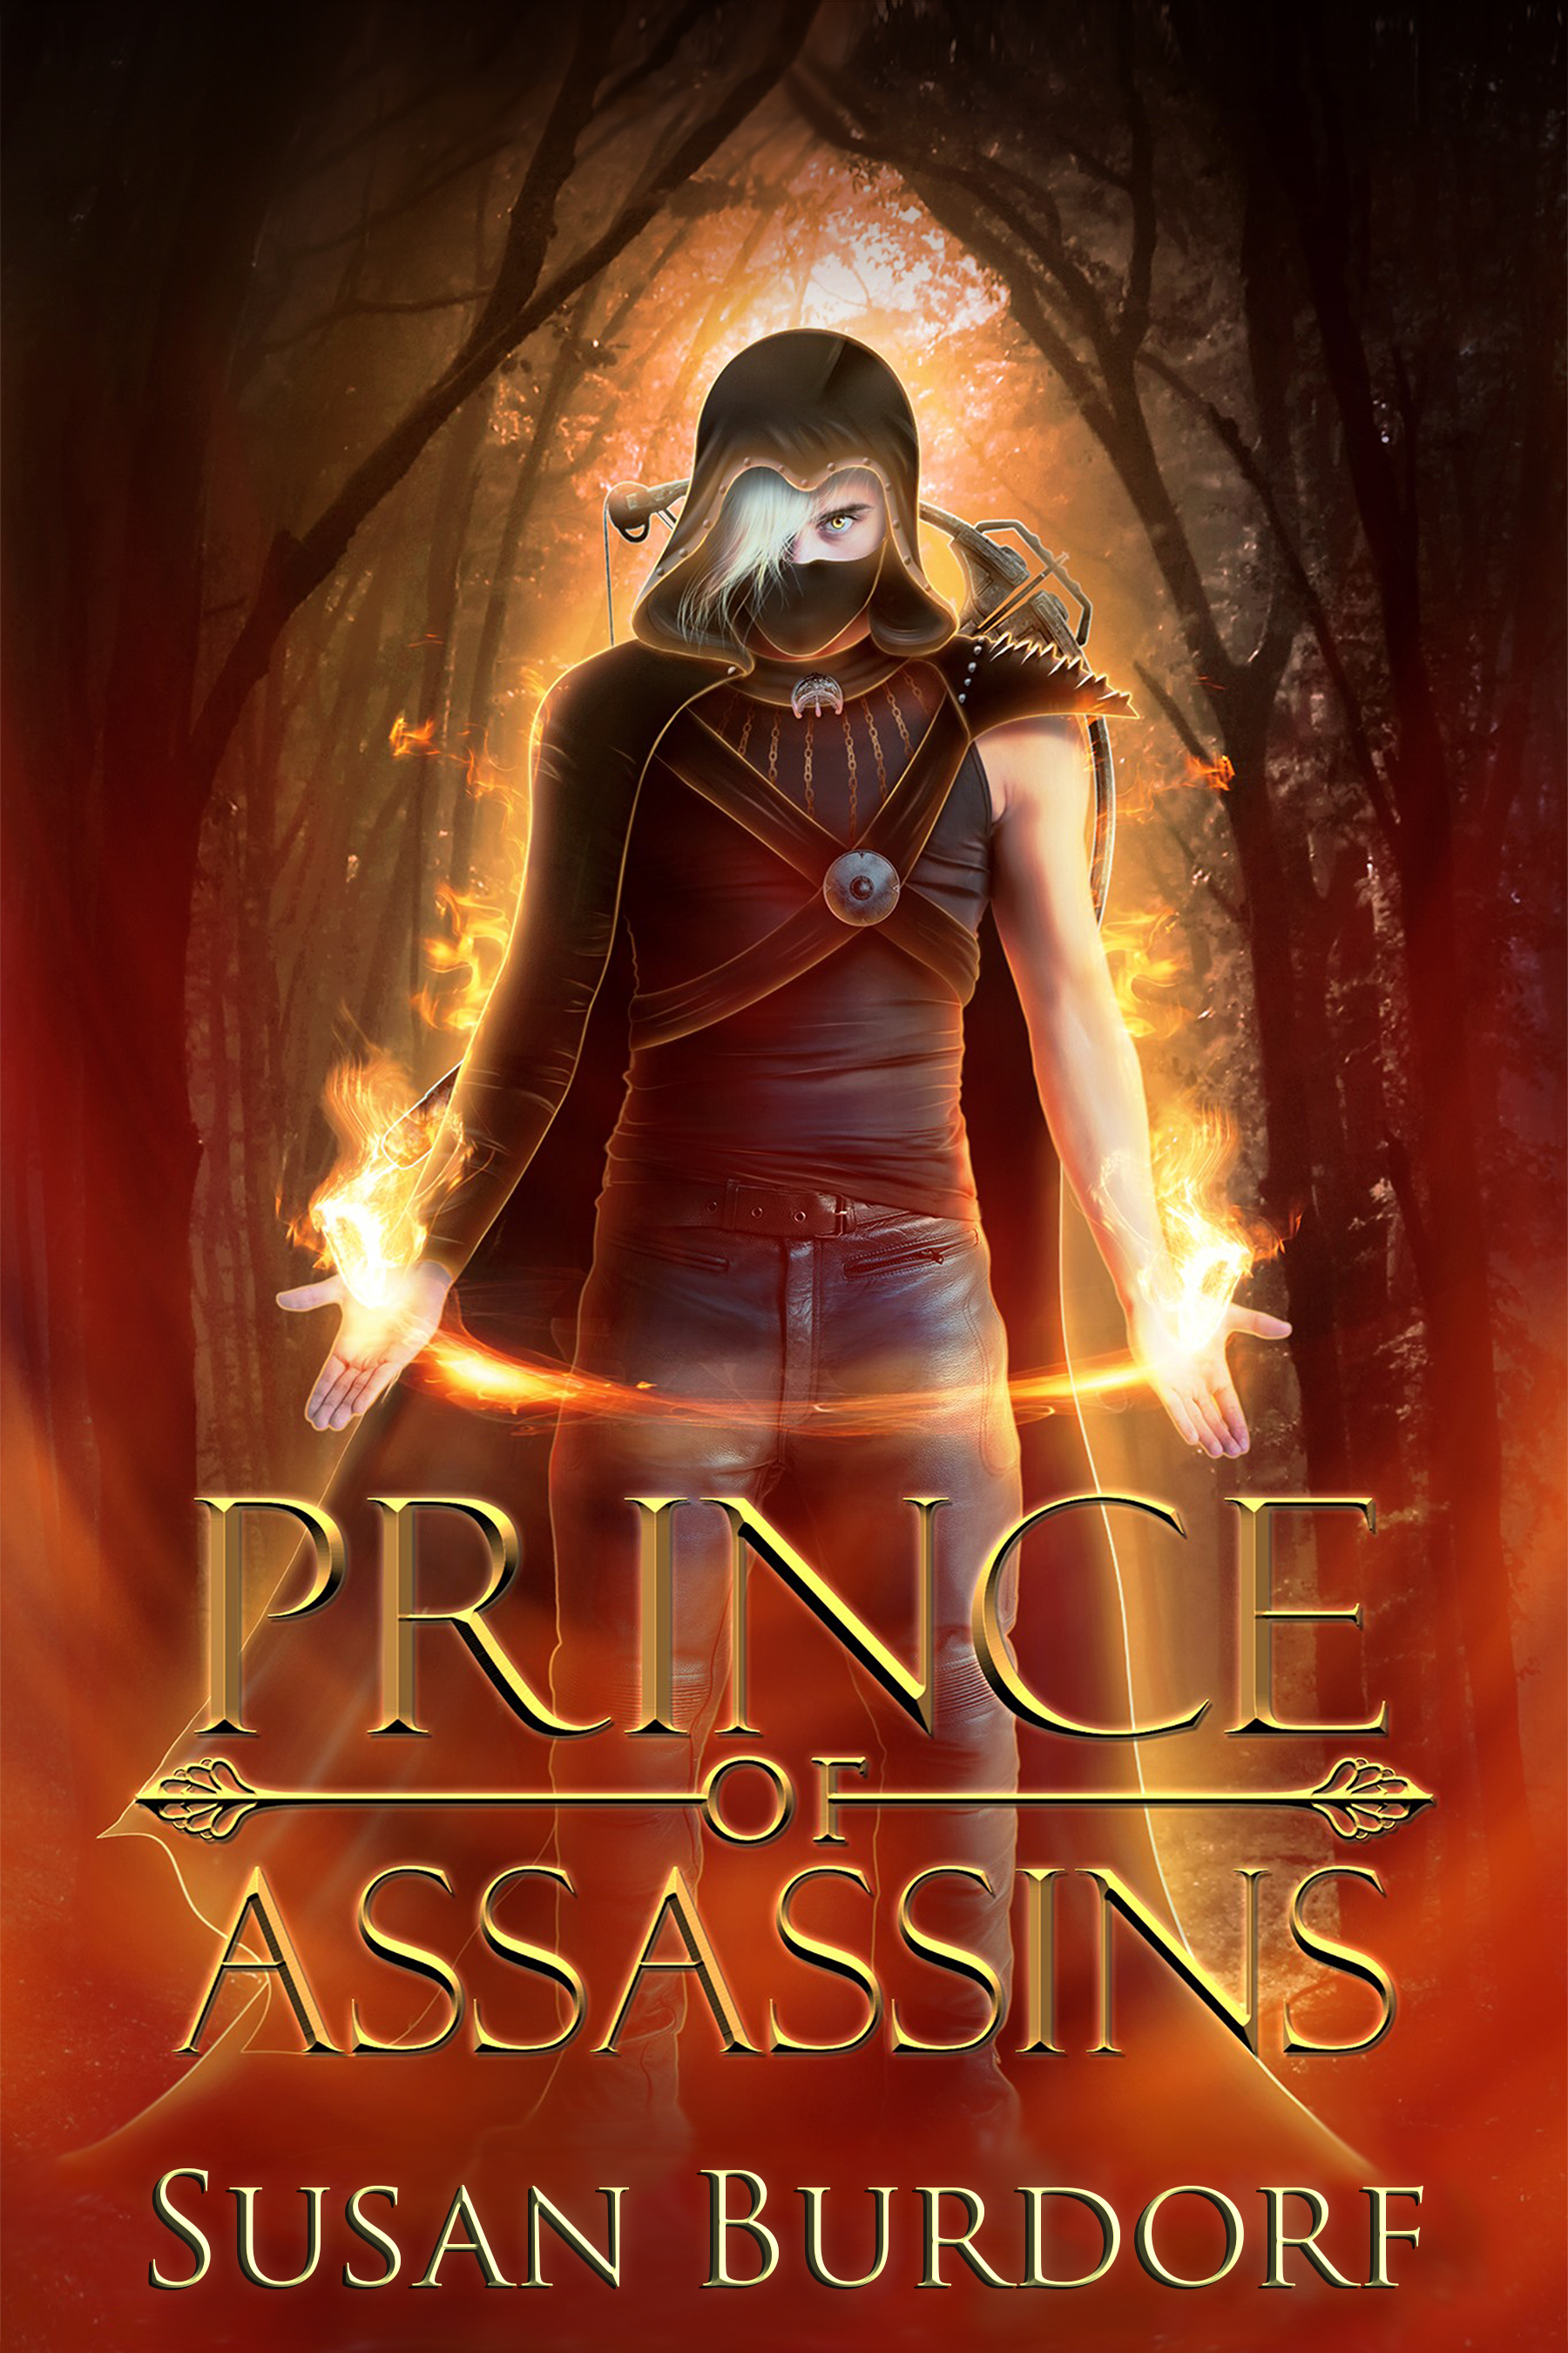 Prince of Assassins